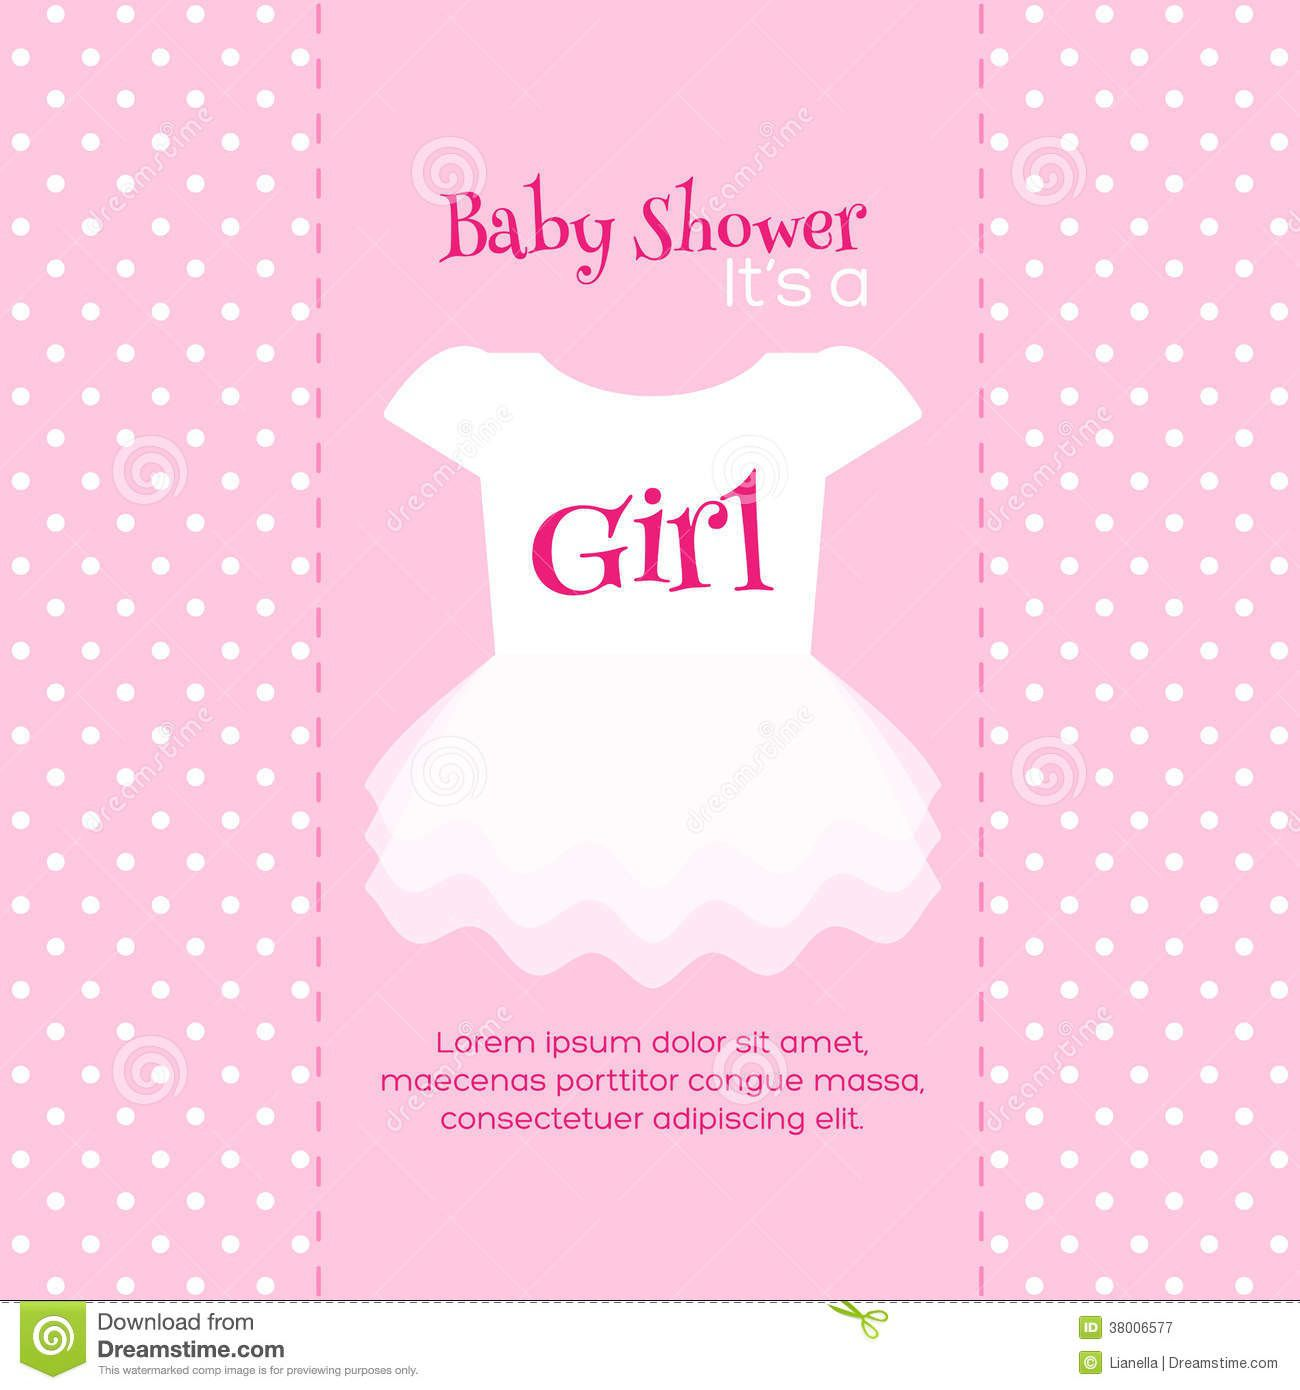 005 Astounding Baby Shower Invitation Card Template Free Download Concept  IndianFull